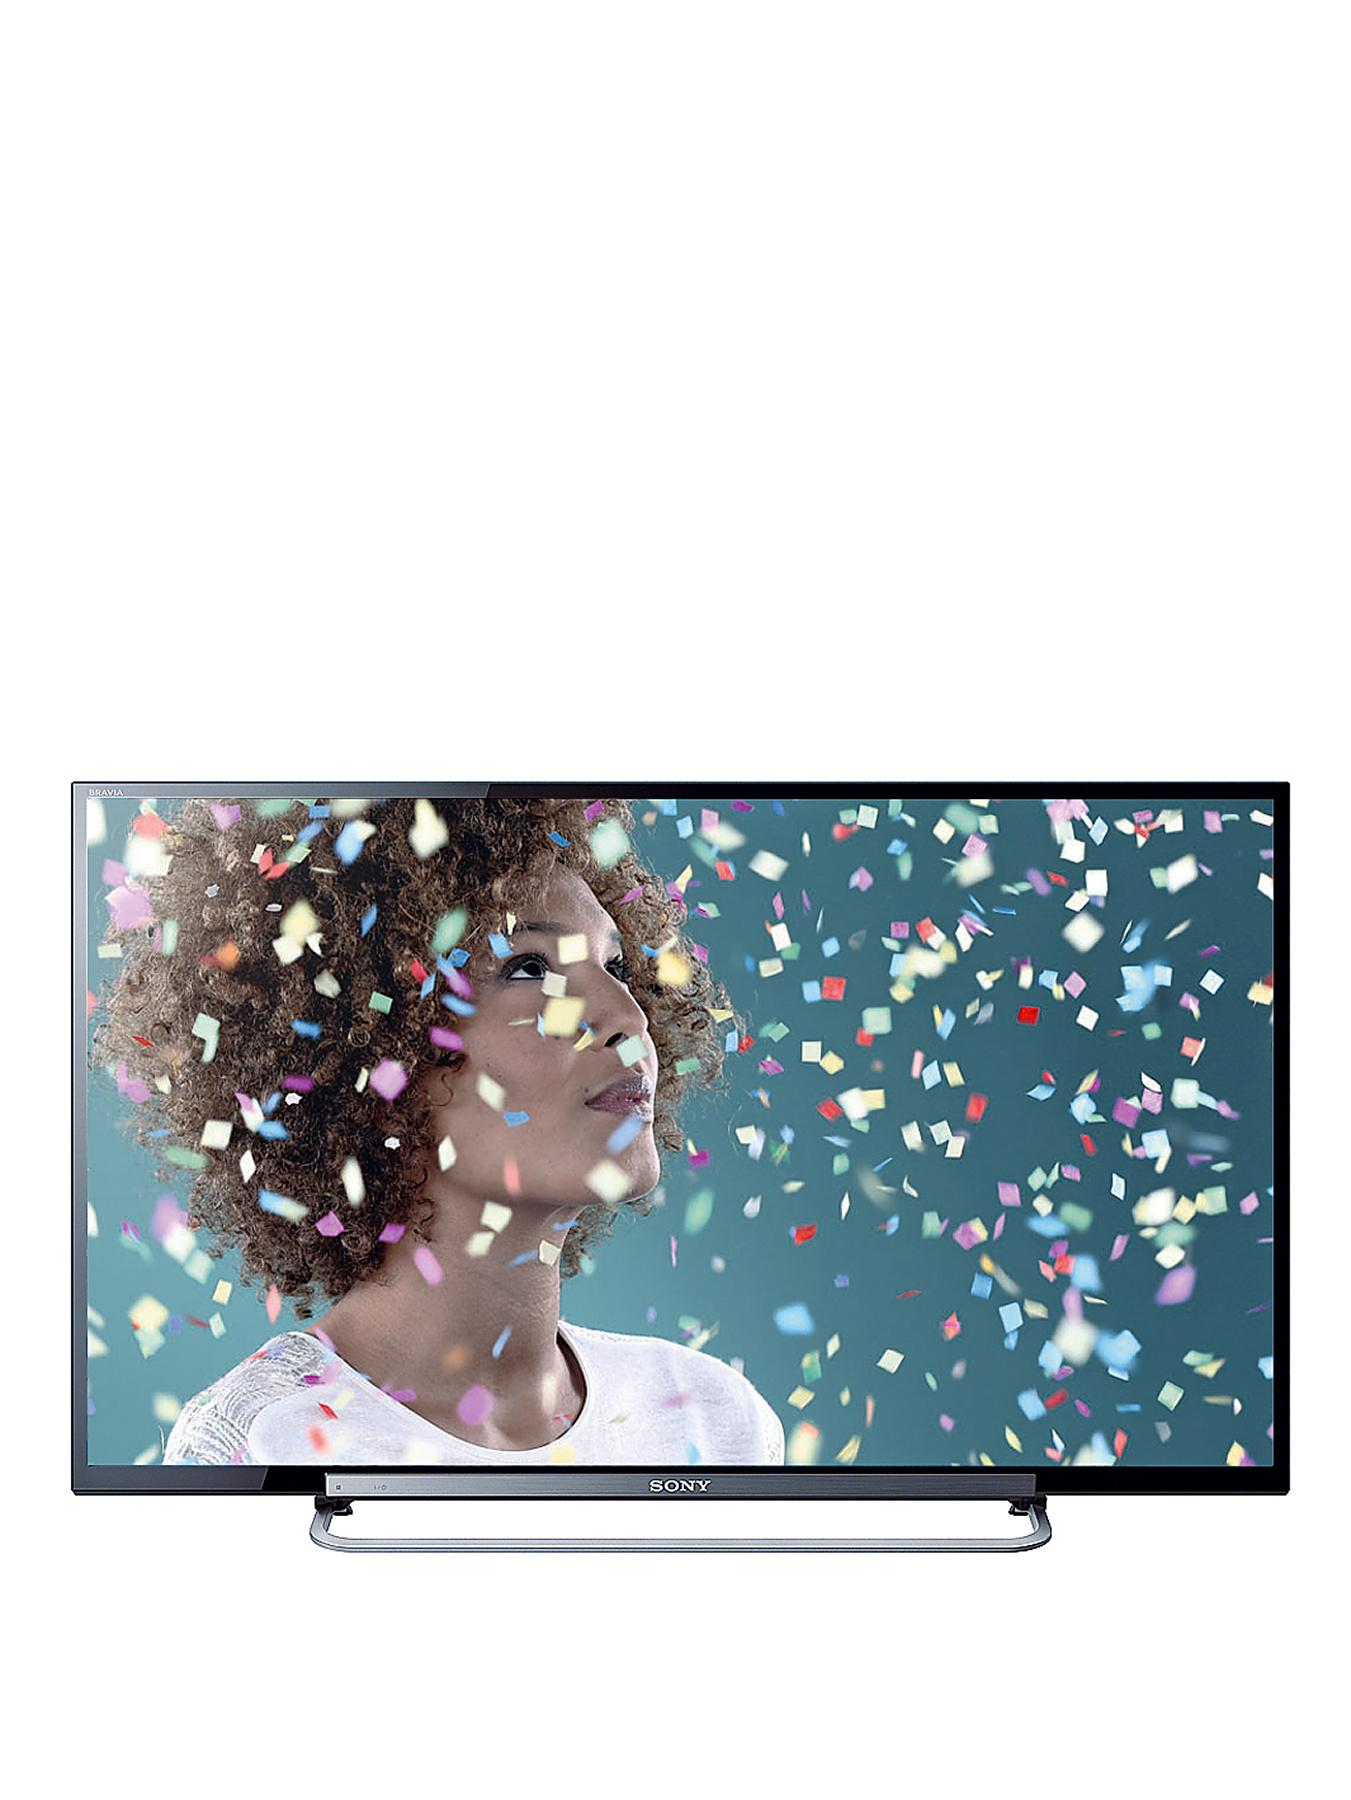 Sony KDL46R473 46-inch Widescreen Freeview Full HD LED TV